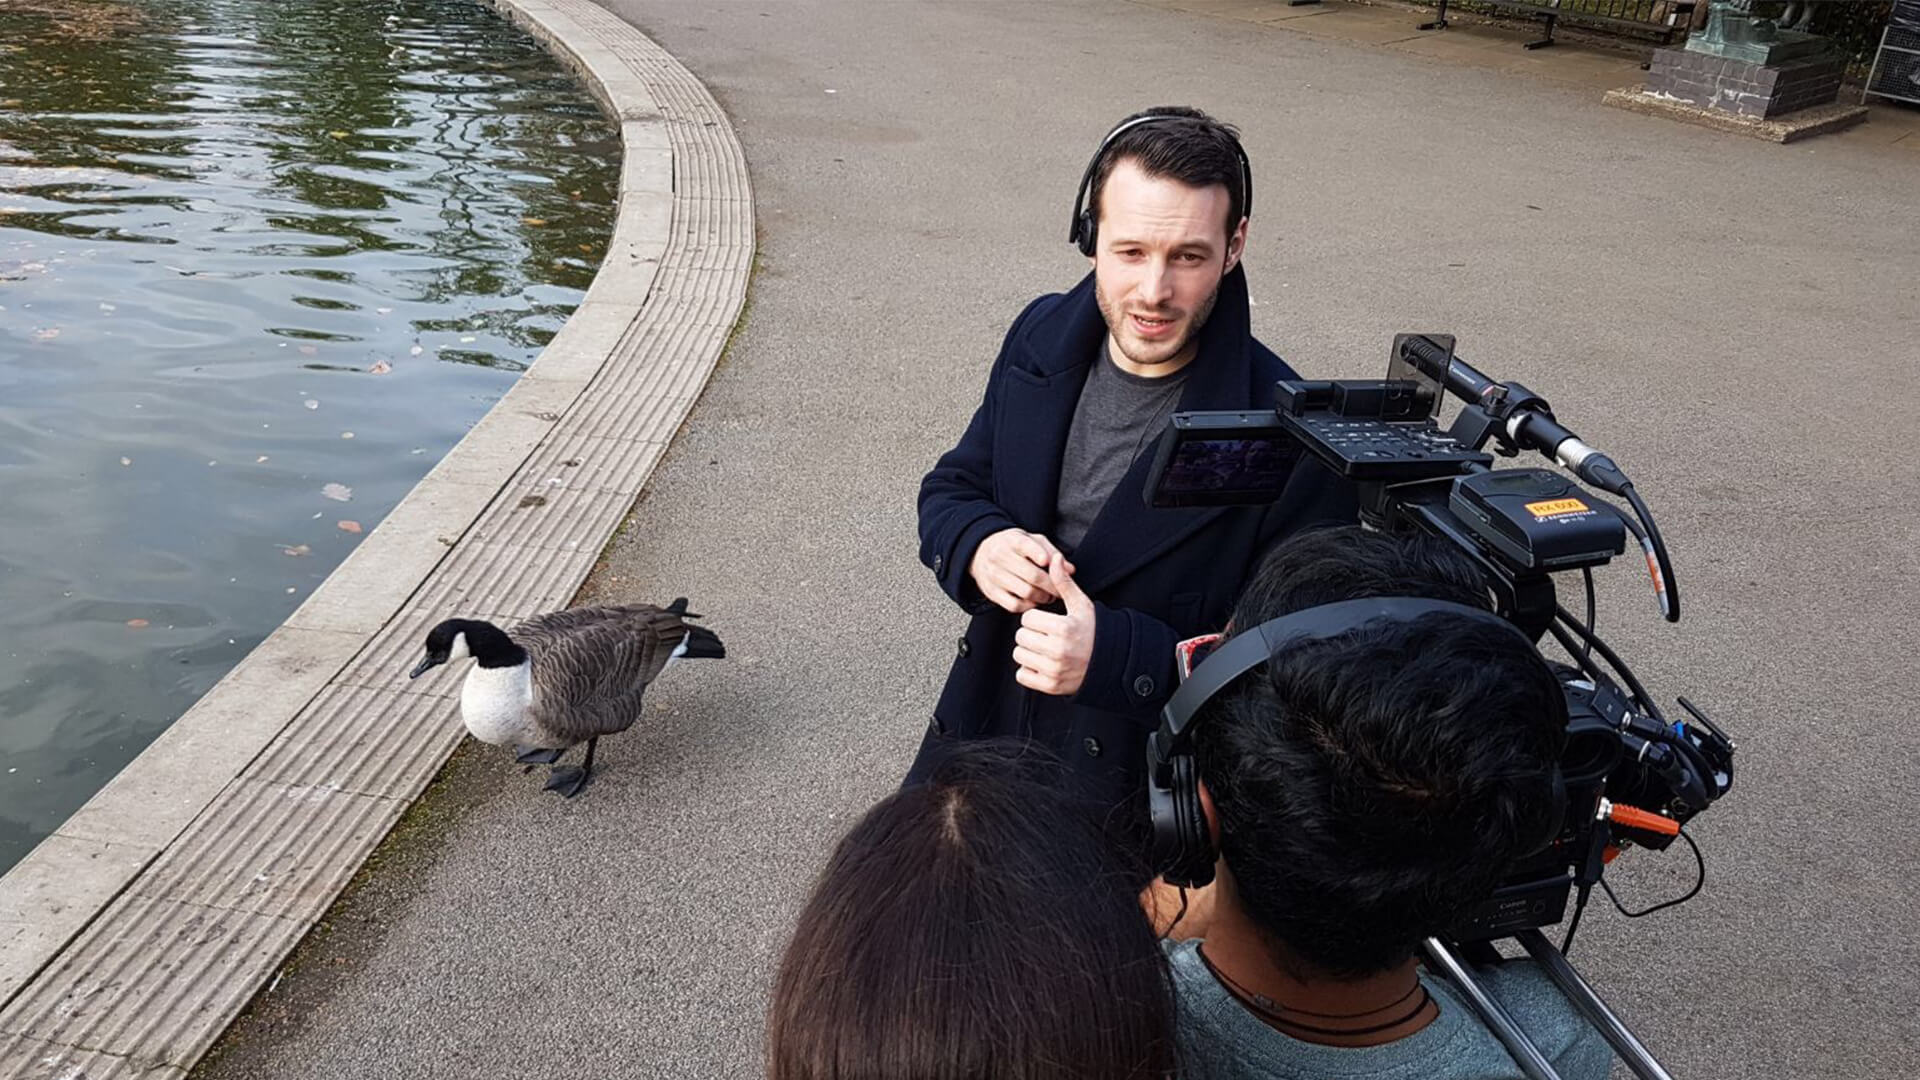 e4 presenter aaron calvert being interviewed about hypnosis project by a pond about stage entertainment